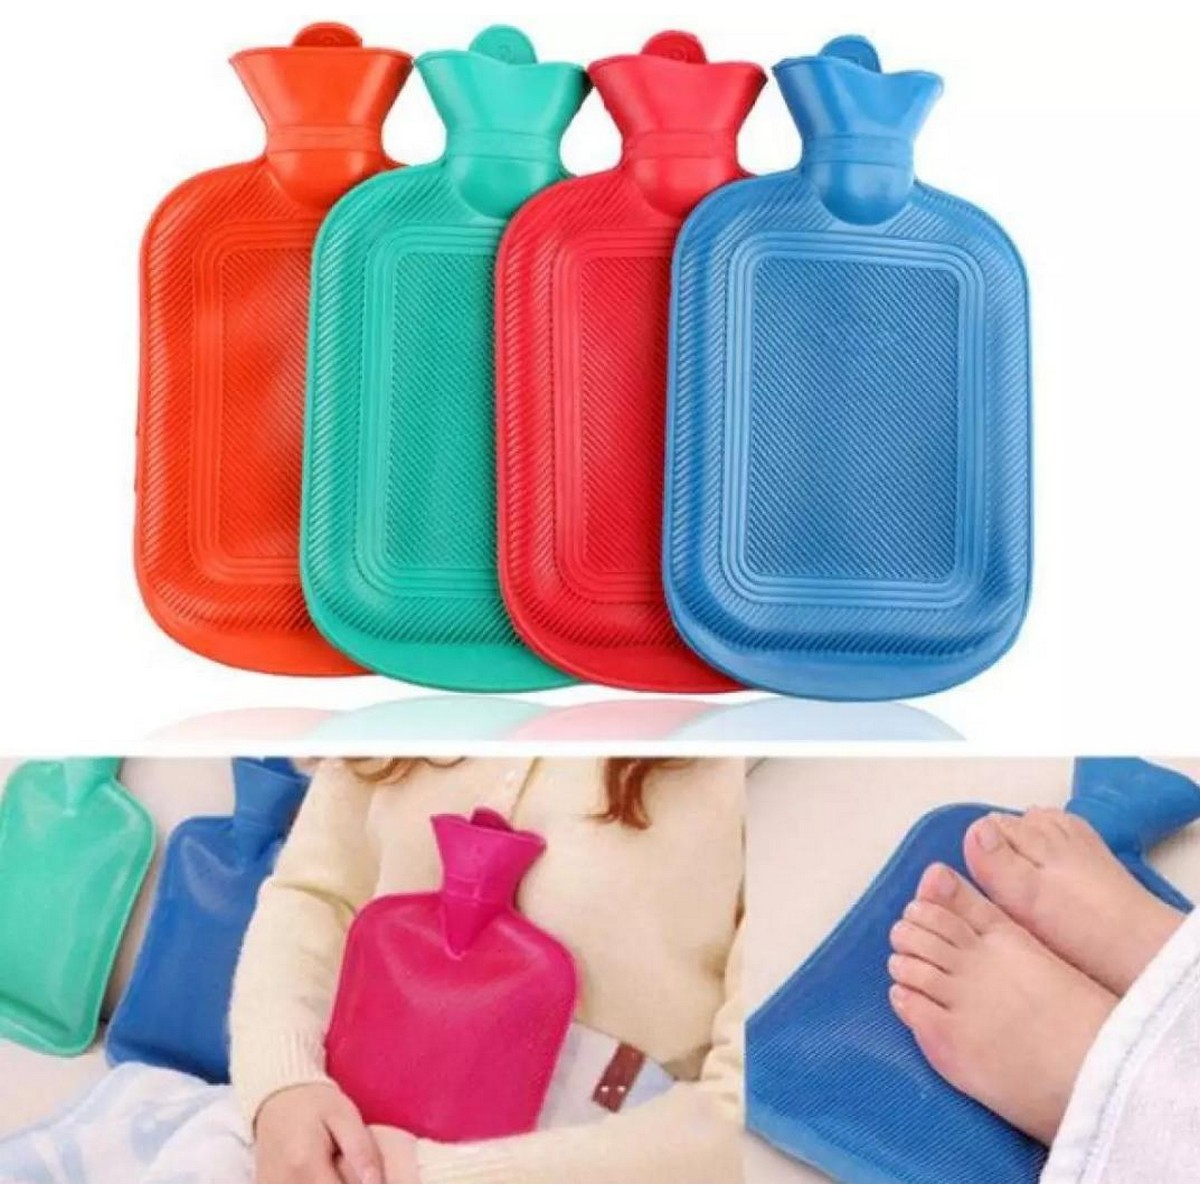 Hot Water Bag / Bottle - Rubber Large 2 Liters - Red